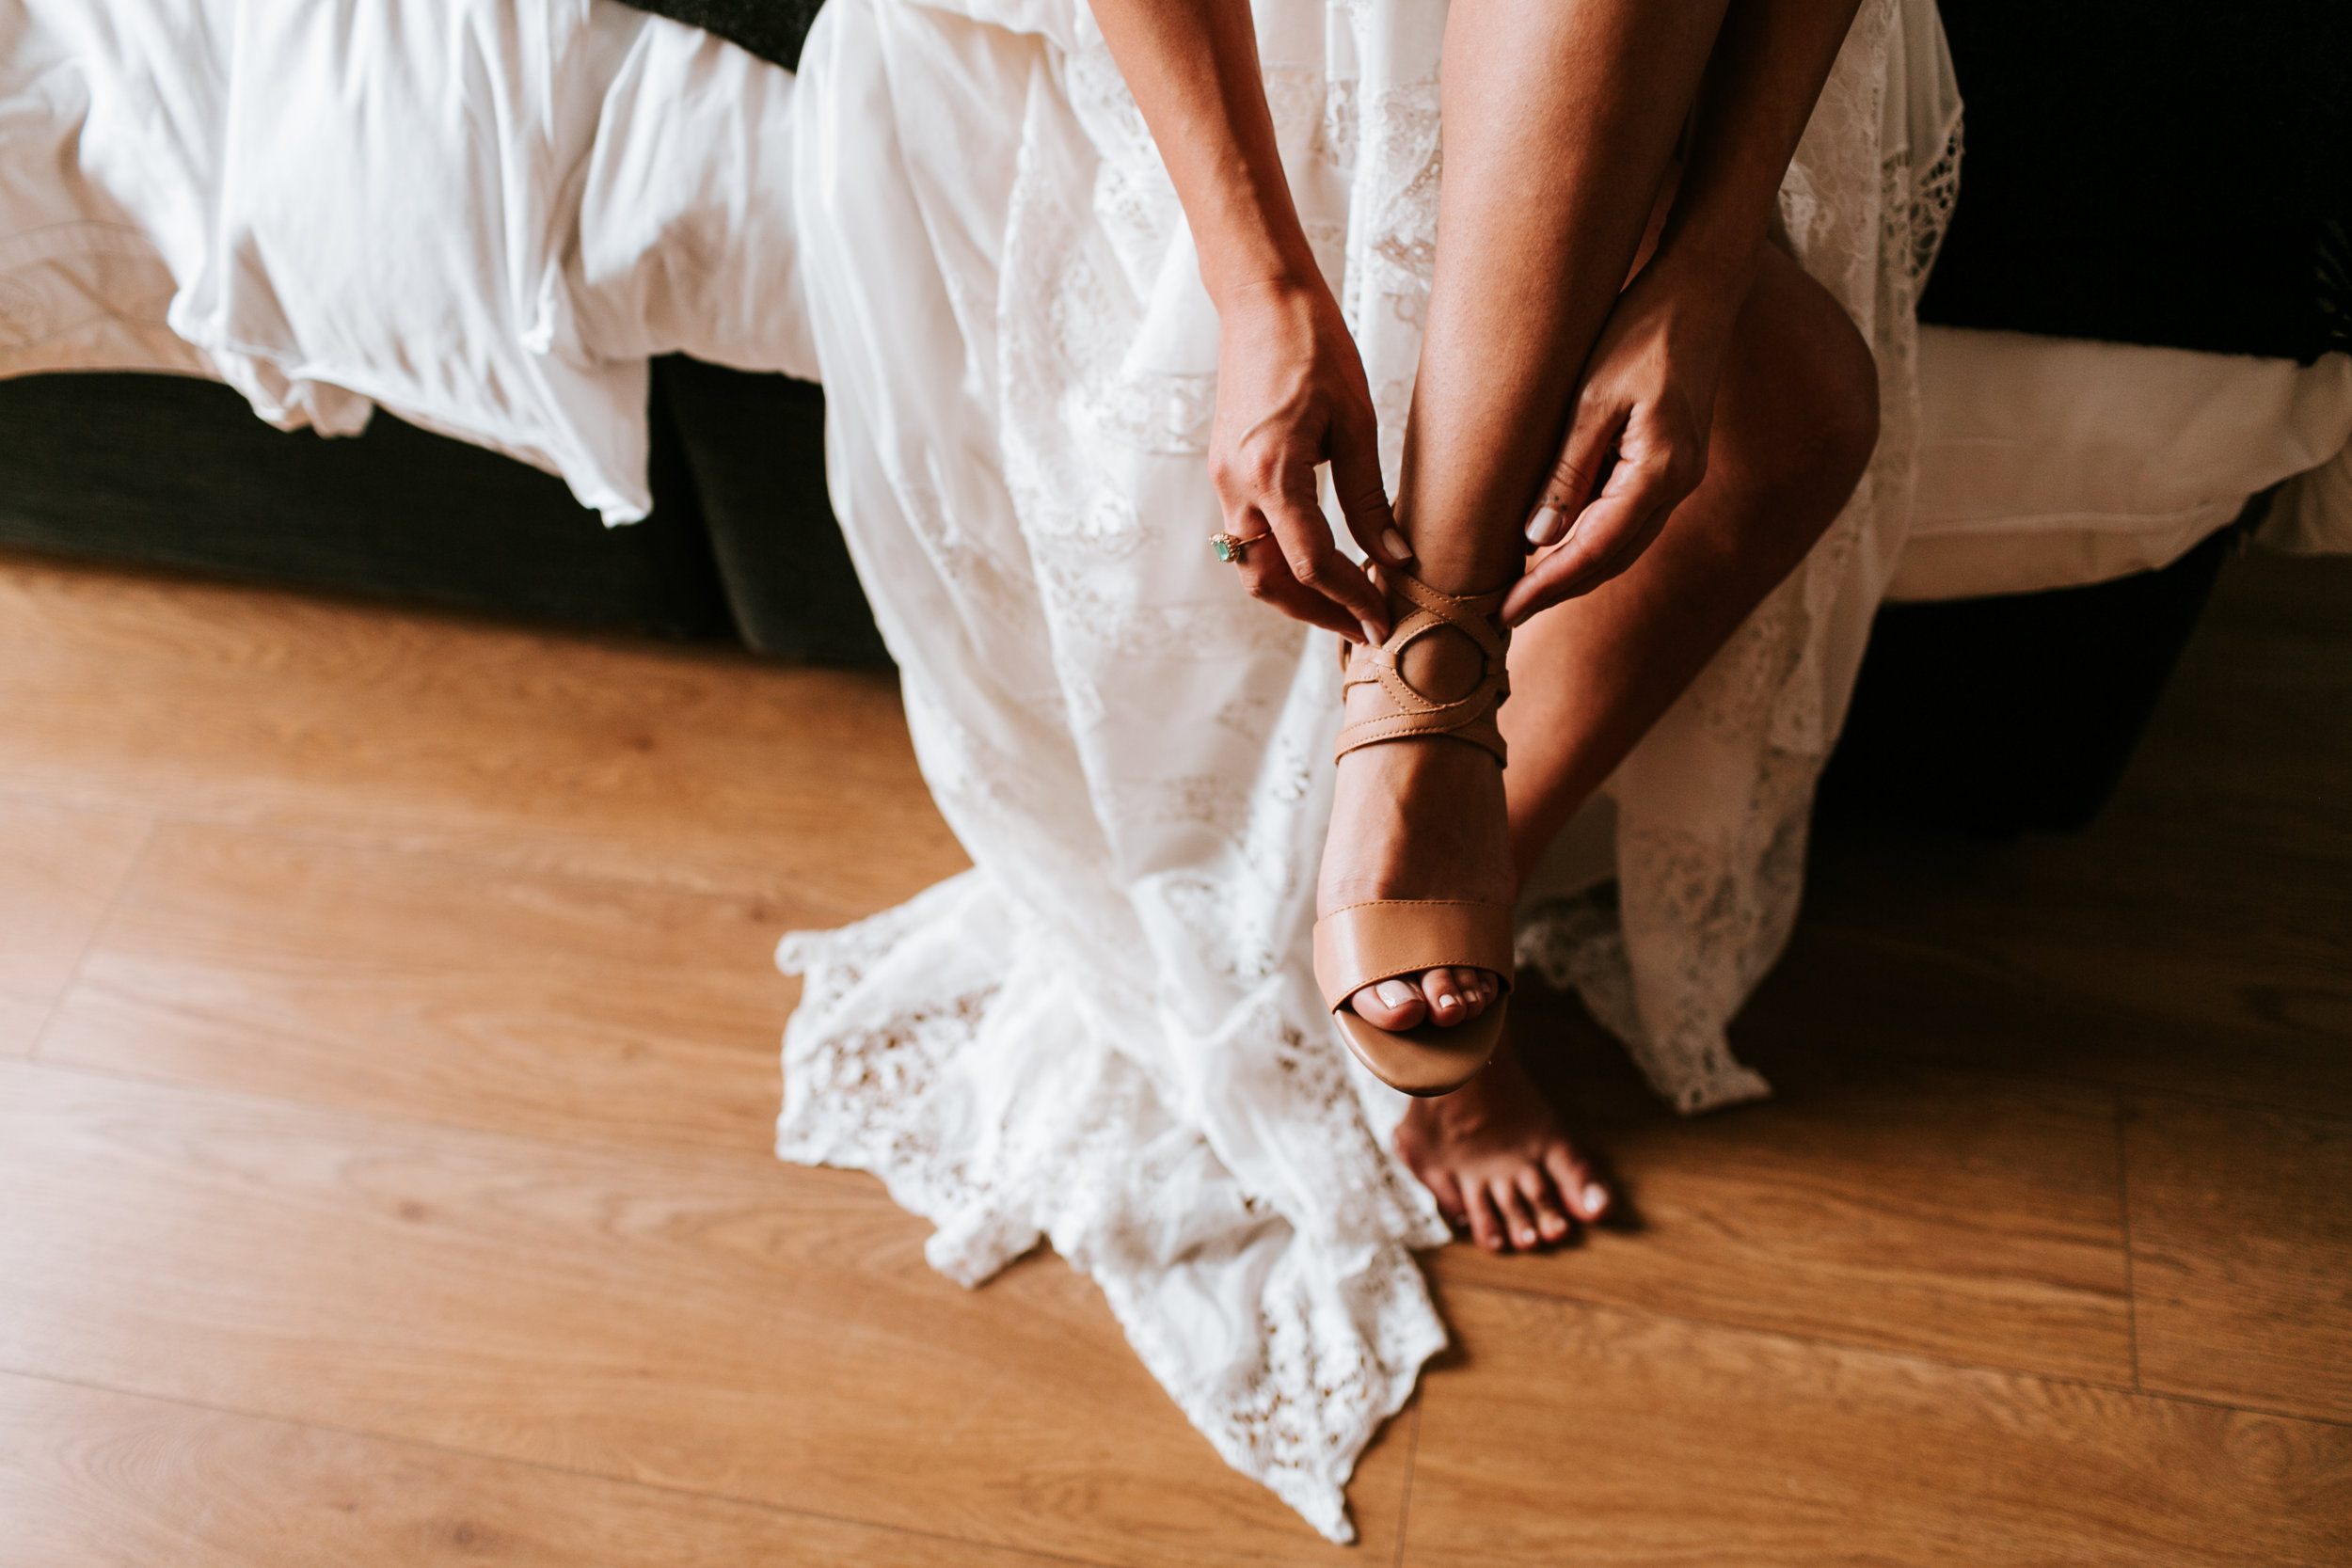 A Pair Of Shoes - Most bridal gowns come in a length that will need some alteration. It's best to bring a pair of shoes along with a small heal (if you plan to wear heals that is). These don't have to be the shoes you plan to wear on your wedding day, but something that will help you feel like you're getting the full look of the gowns you'll be trying on.